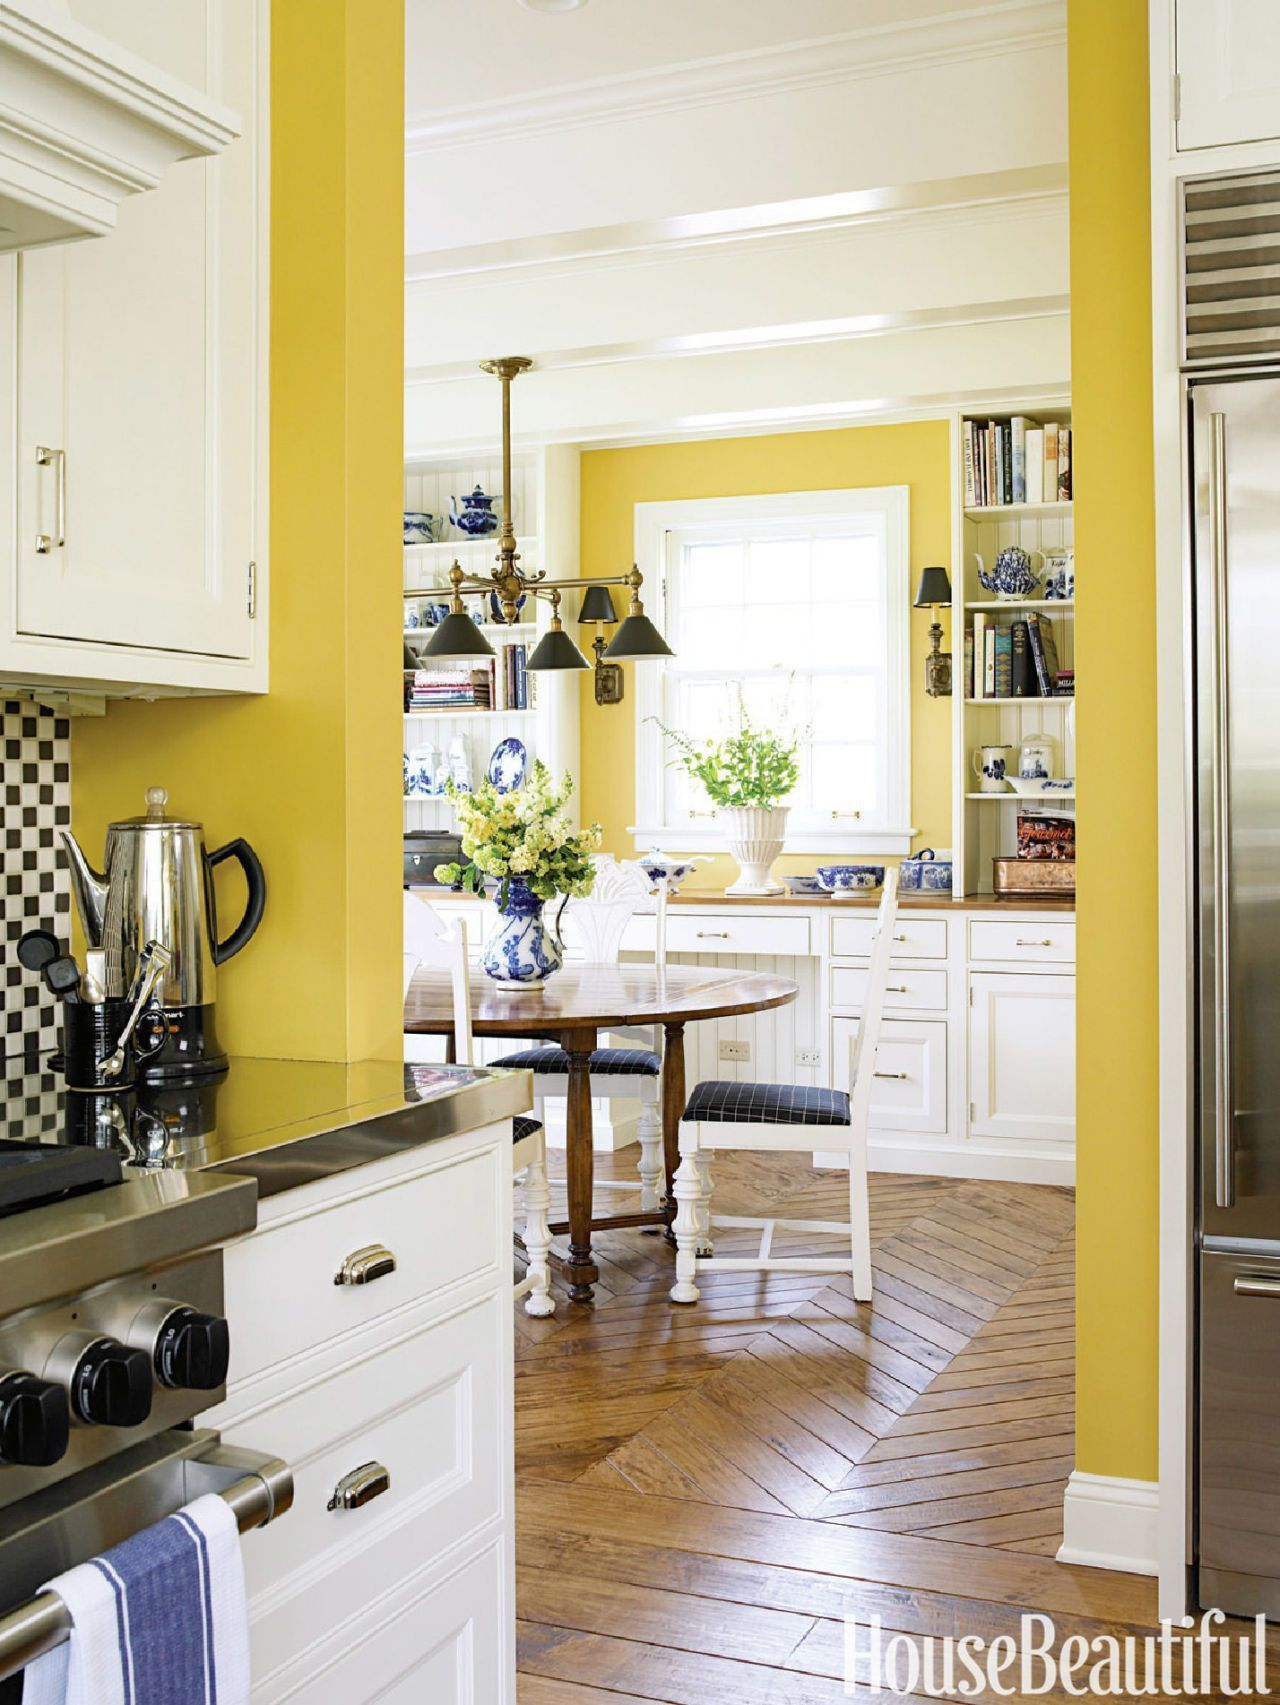 Lovely Yellow Kitchen Ideas Walls 10 Yellow Kitchens Decor Ideas Kitchens With Yellow Walls In 2020 Yellow Kitchen Decor Yellow Kitchen Walls Kitchen Color Yellow